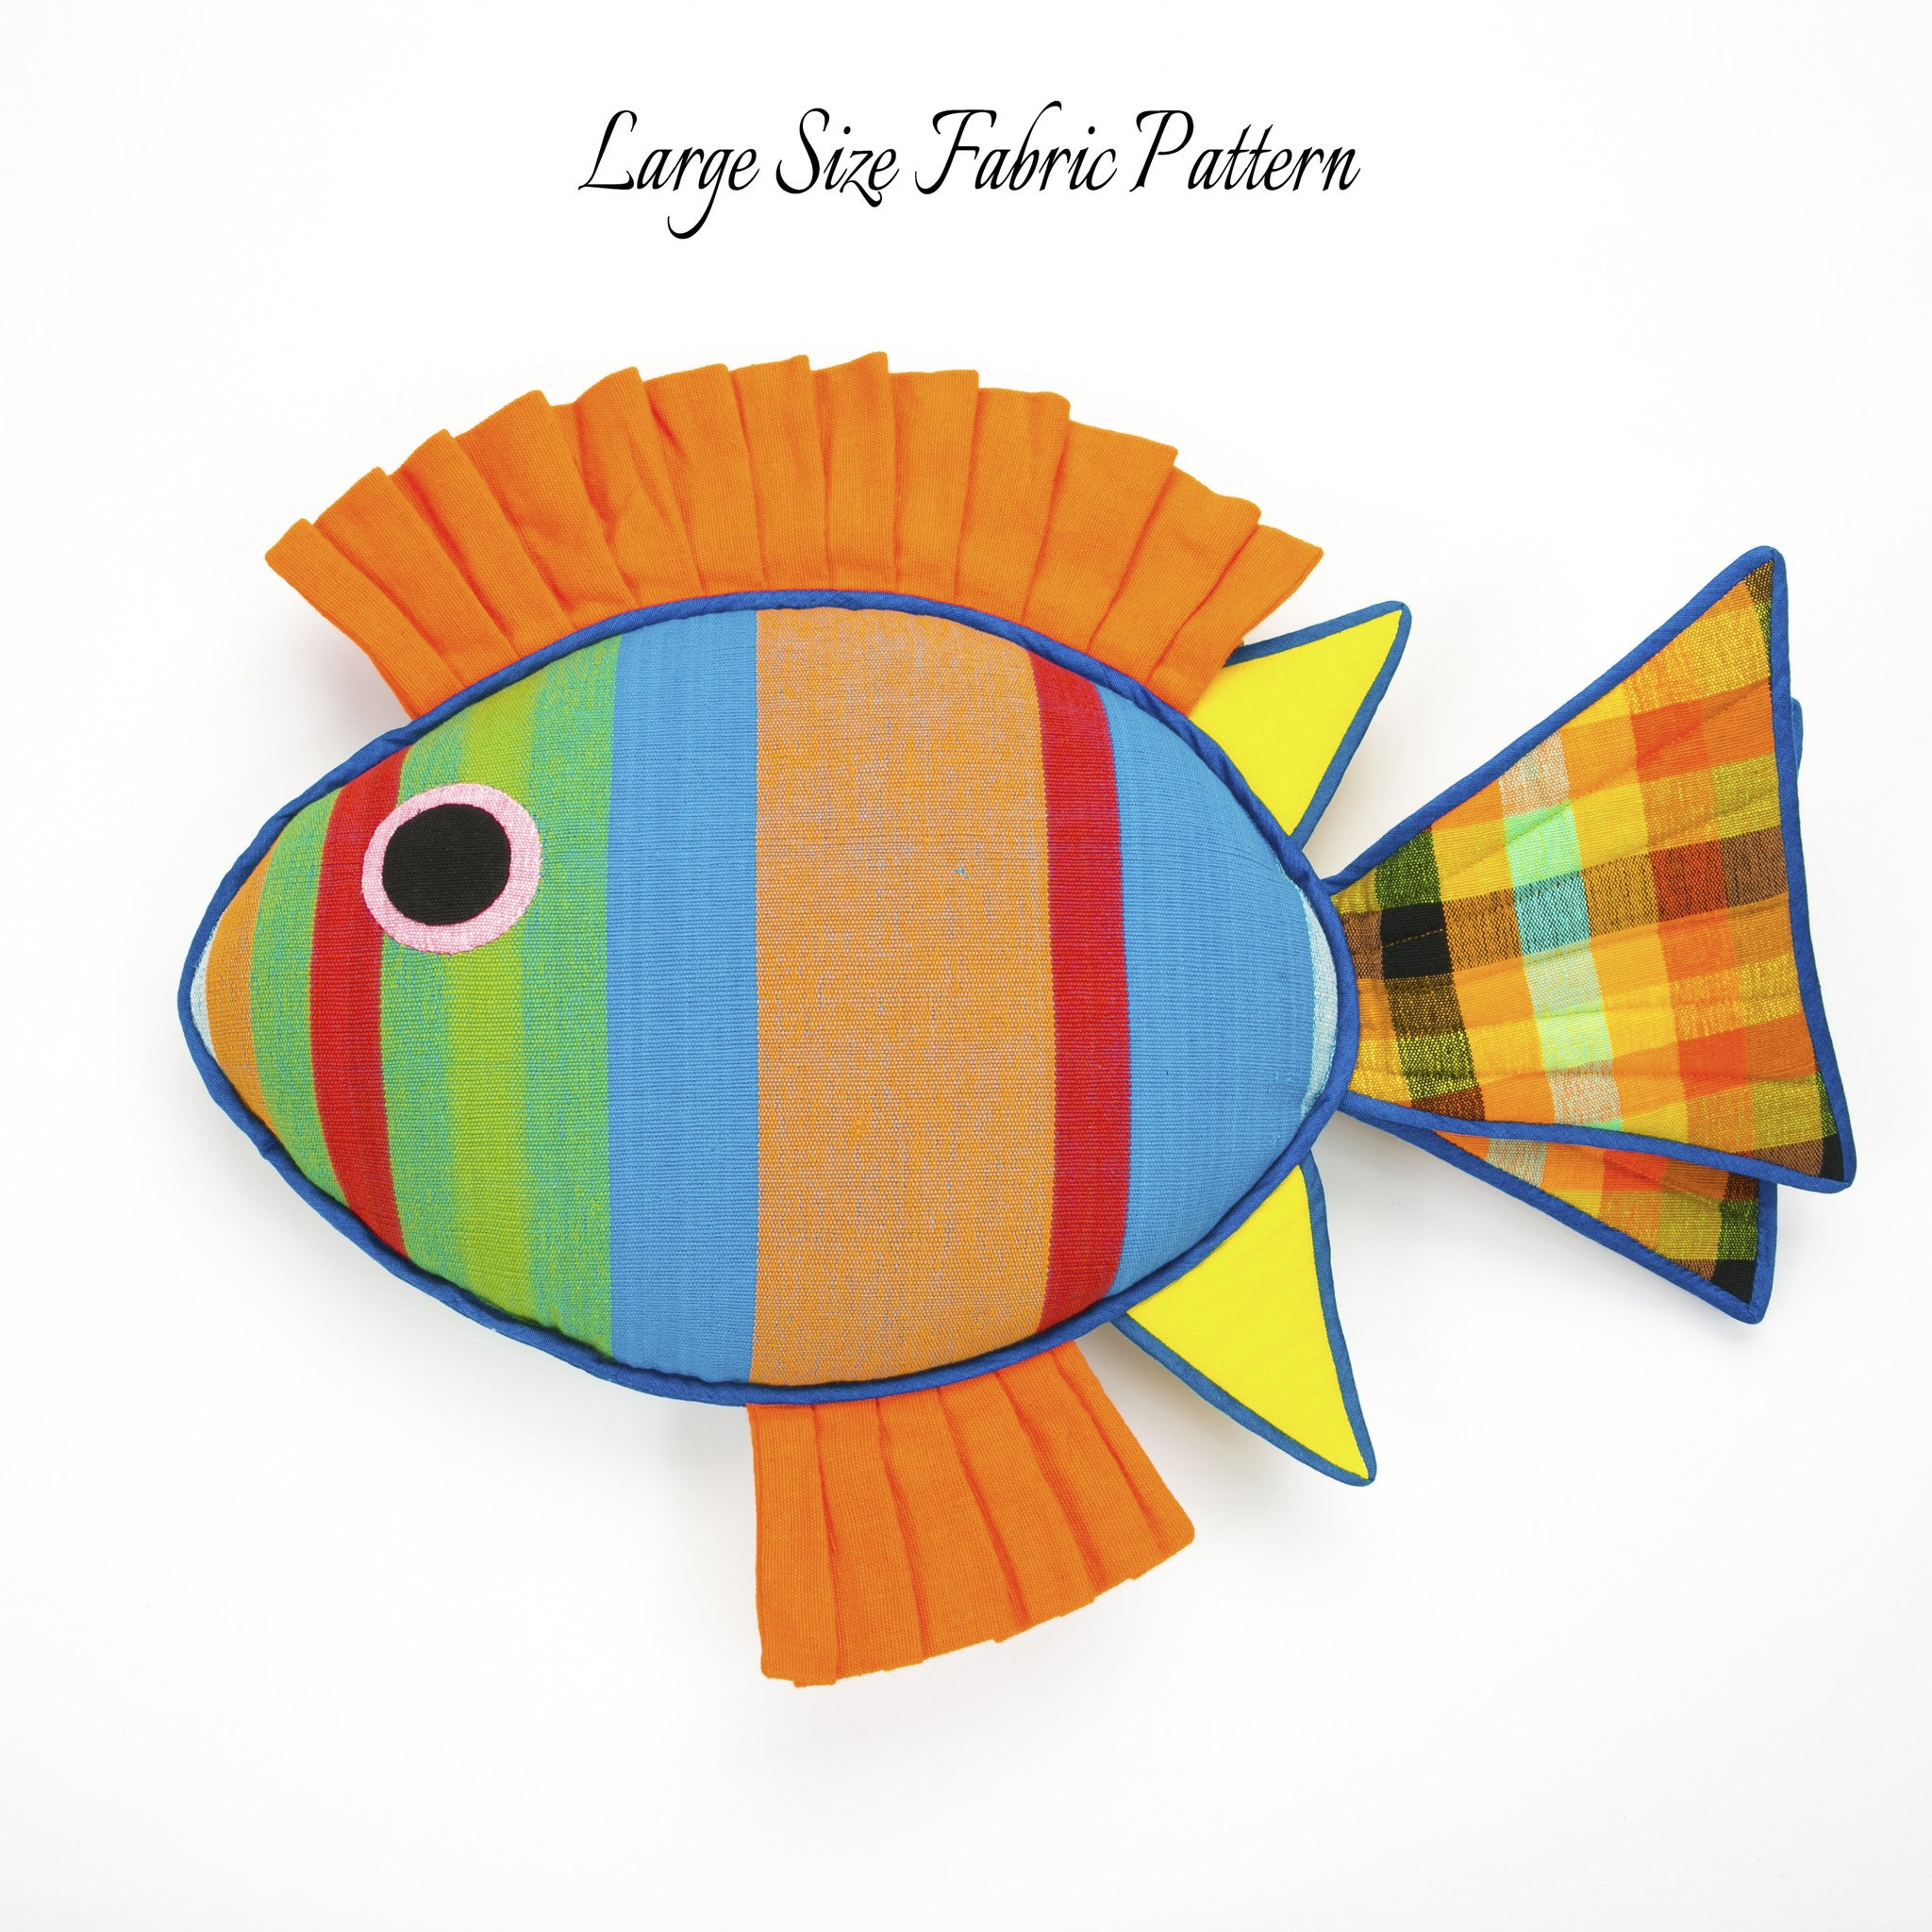 Levi, the Rabbit Fish – large size fabric pattern shown